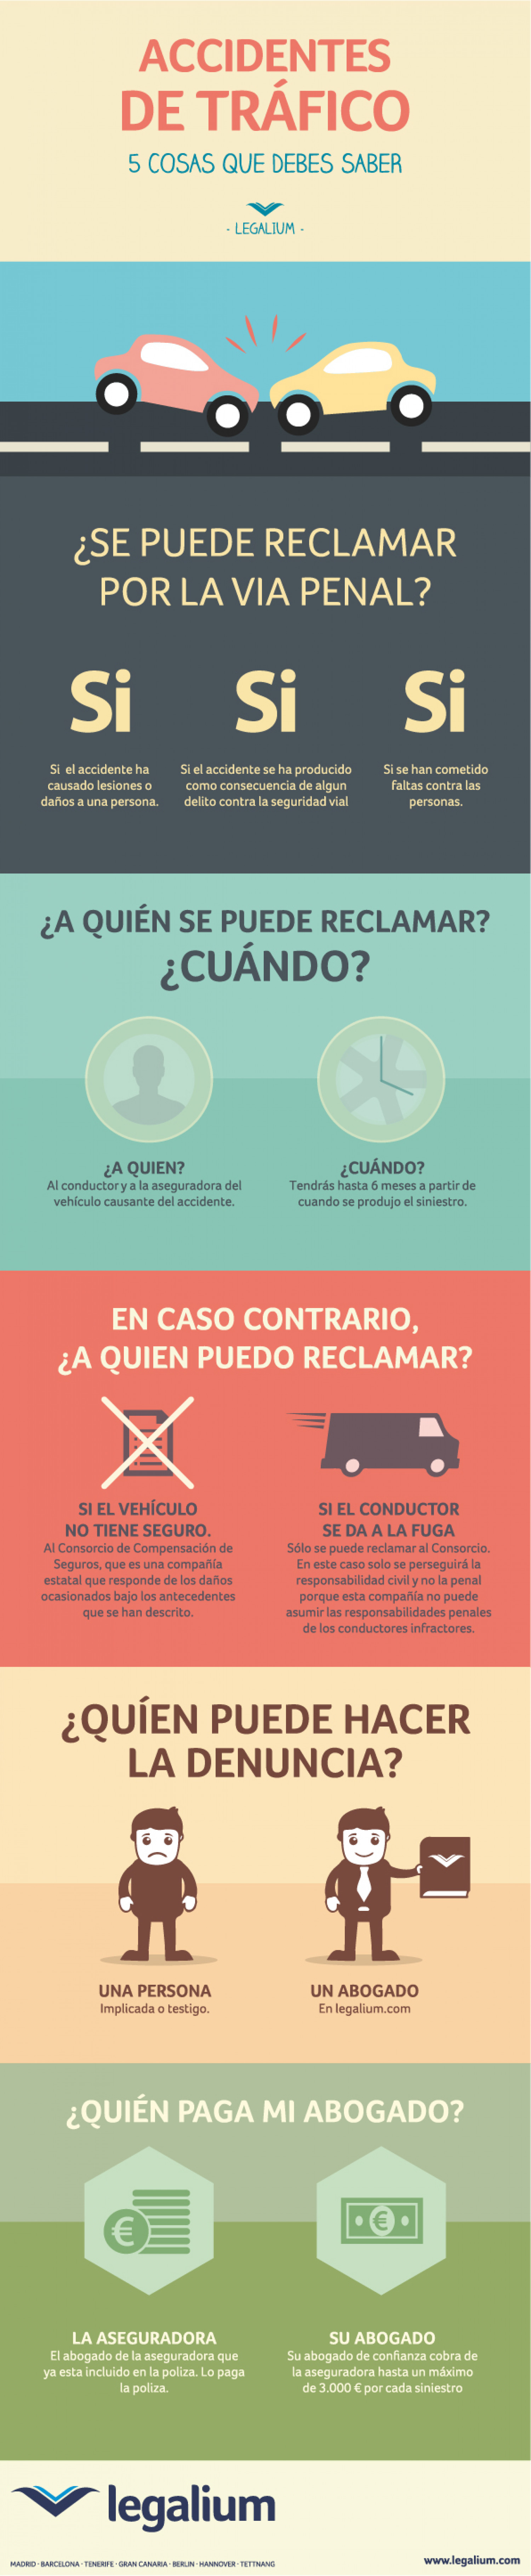 Accidentes de Tráfico Infographic